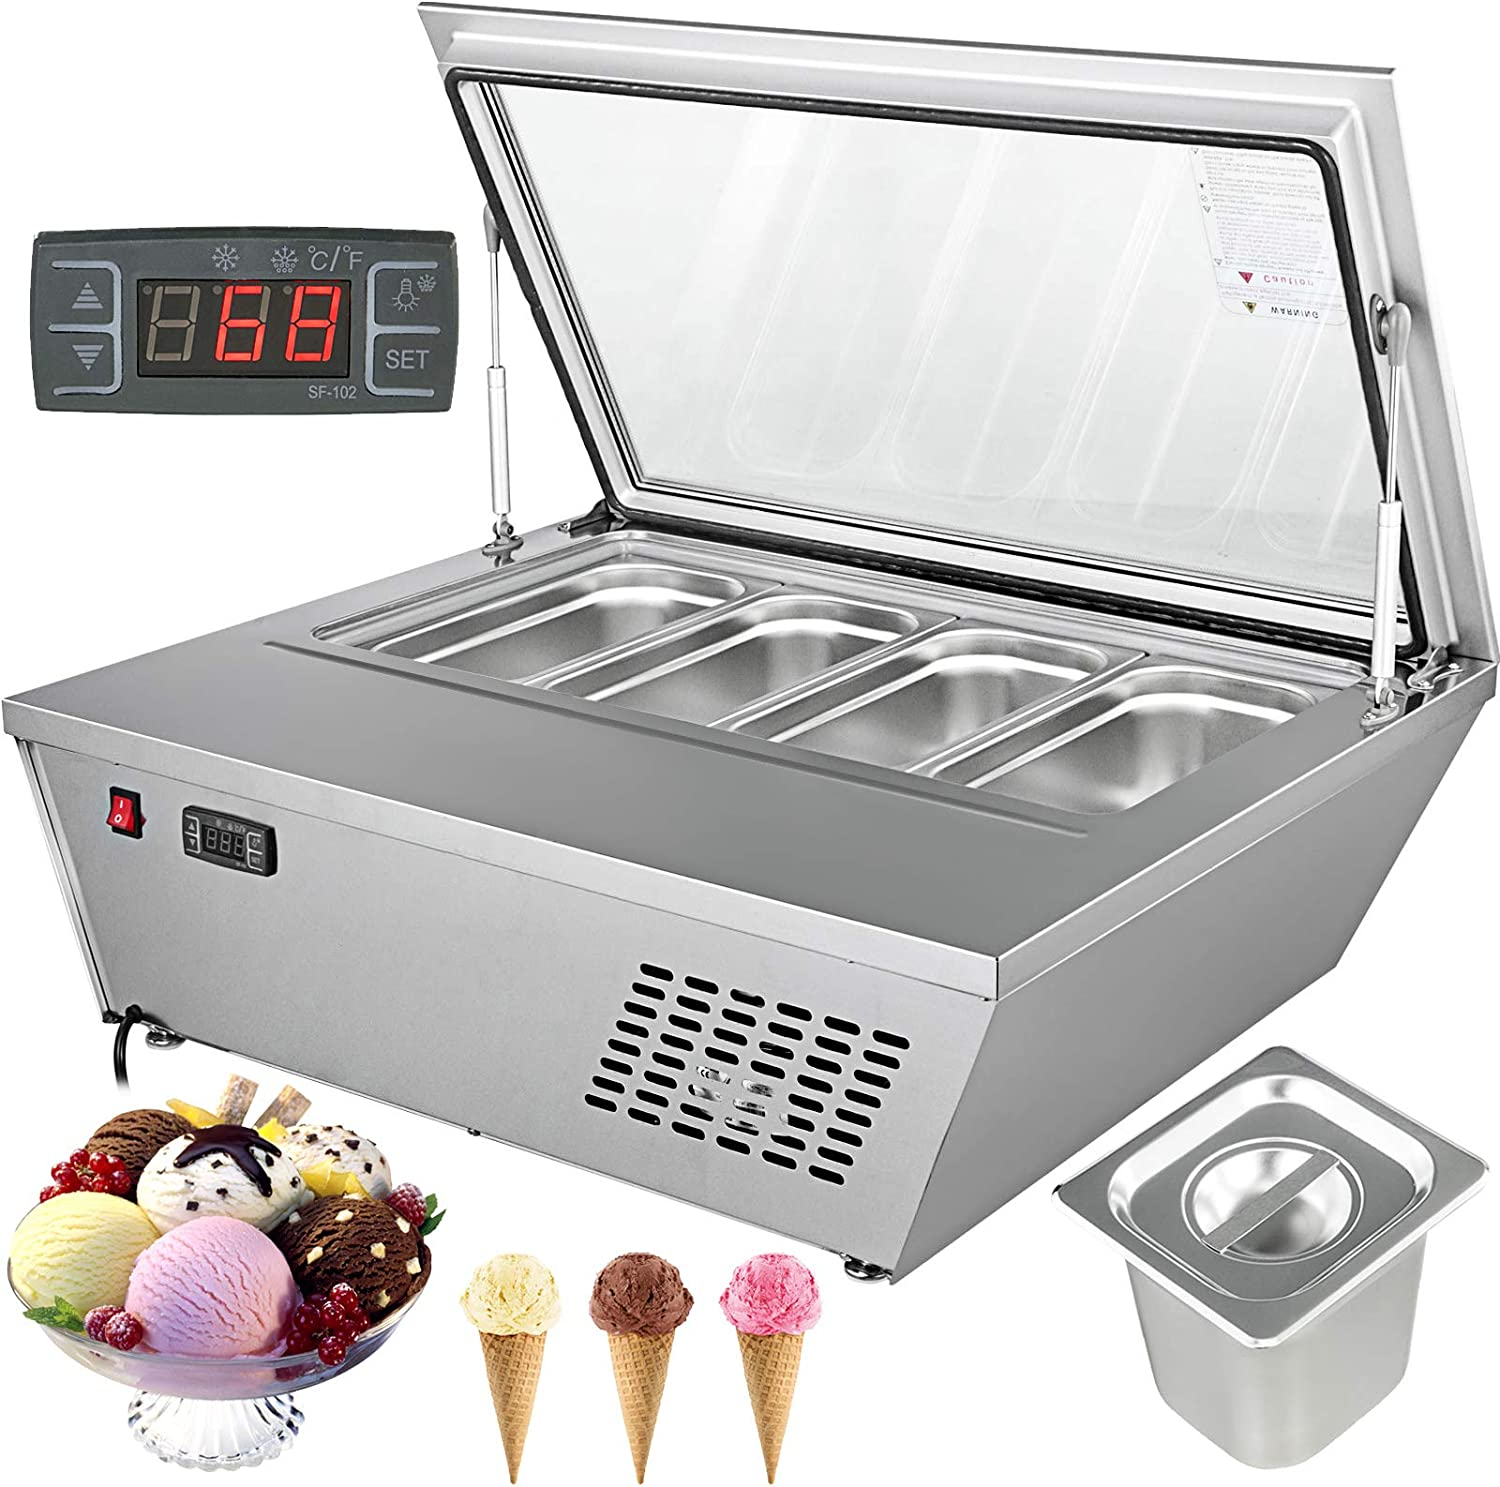 VBENLEM 250W Commercial Ice Cream Display Freezer 110V Gelato Show Case Automatic Defrost Flat Cover 8x2.5L Pans Ice Cream Display Cooler, Annexation 4x5L Pans, -0.4℉ to -13℉